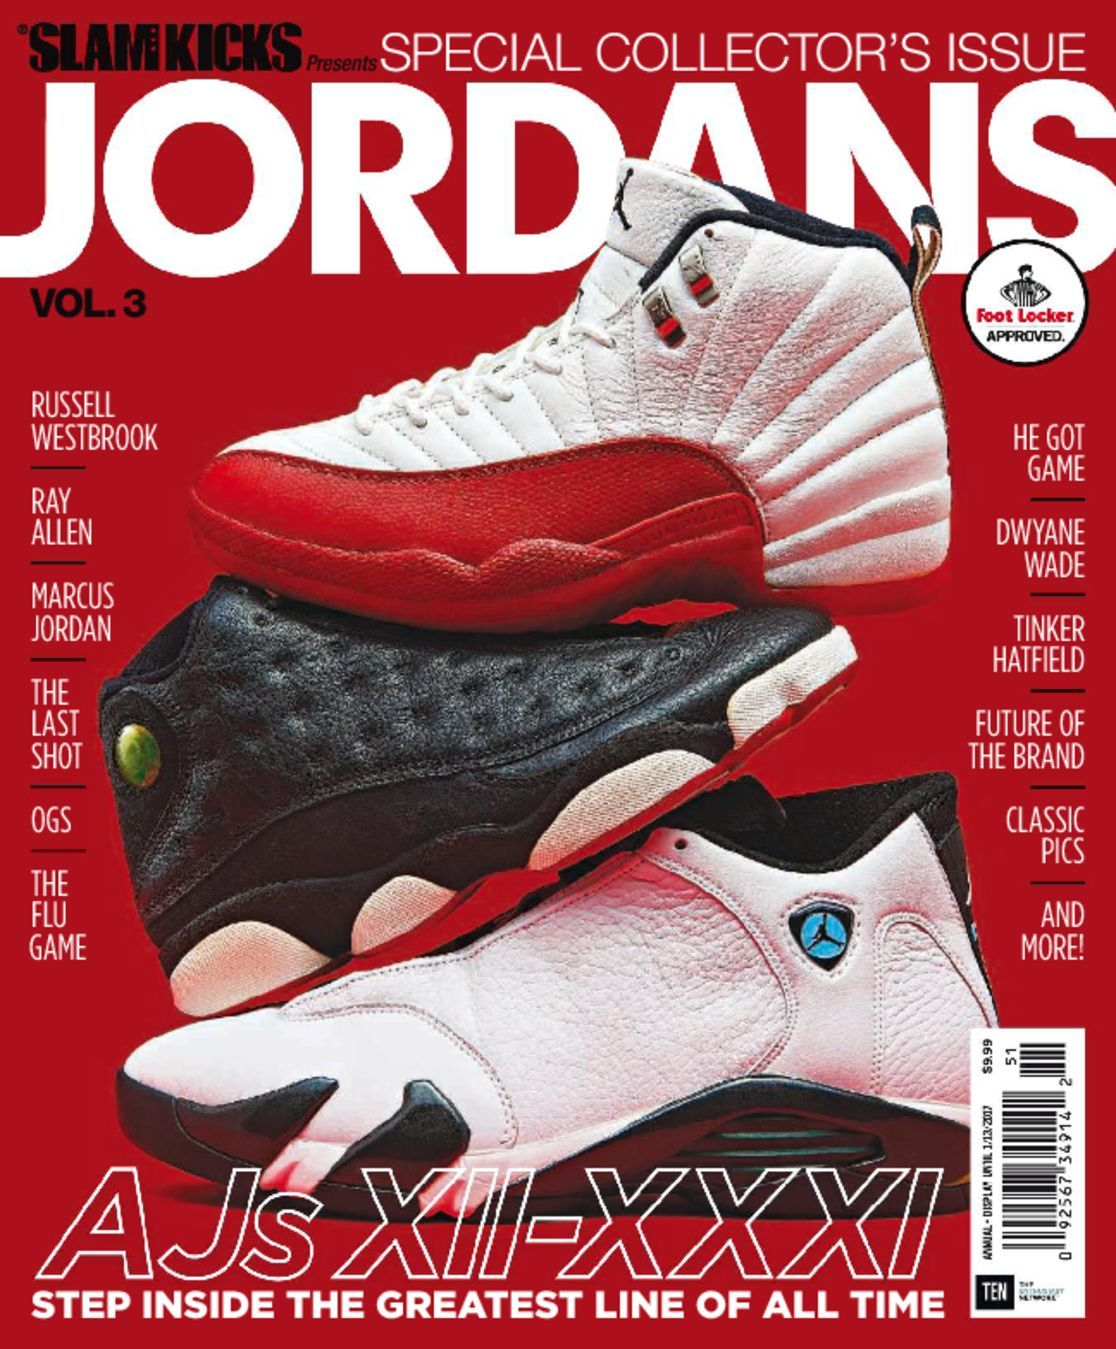 Slam's Jordan Kicks Digital